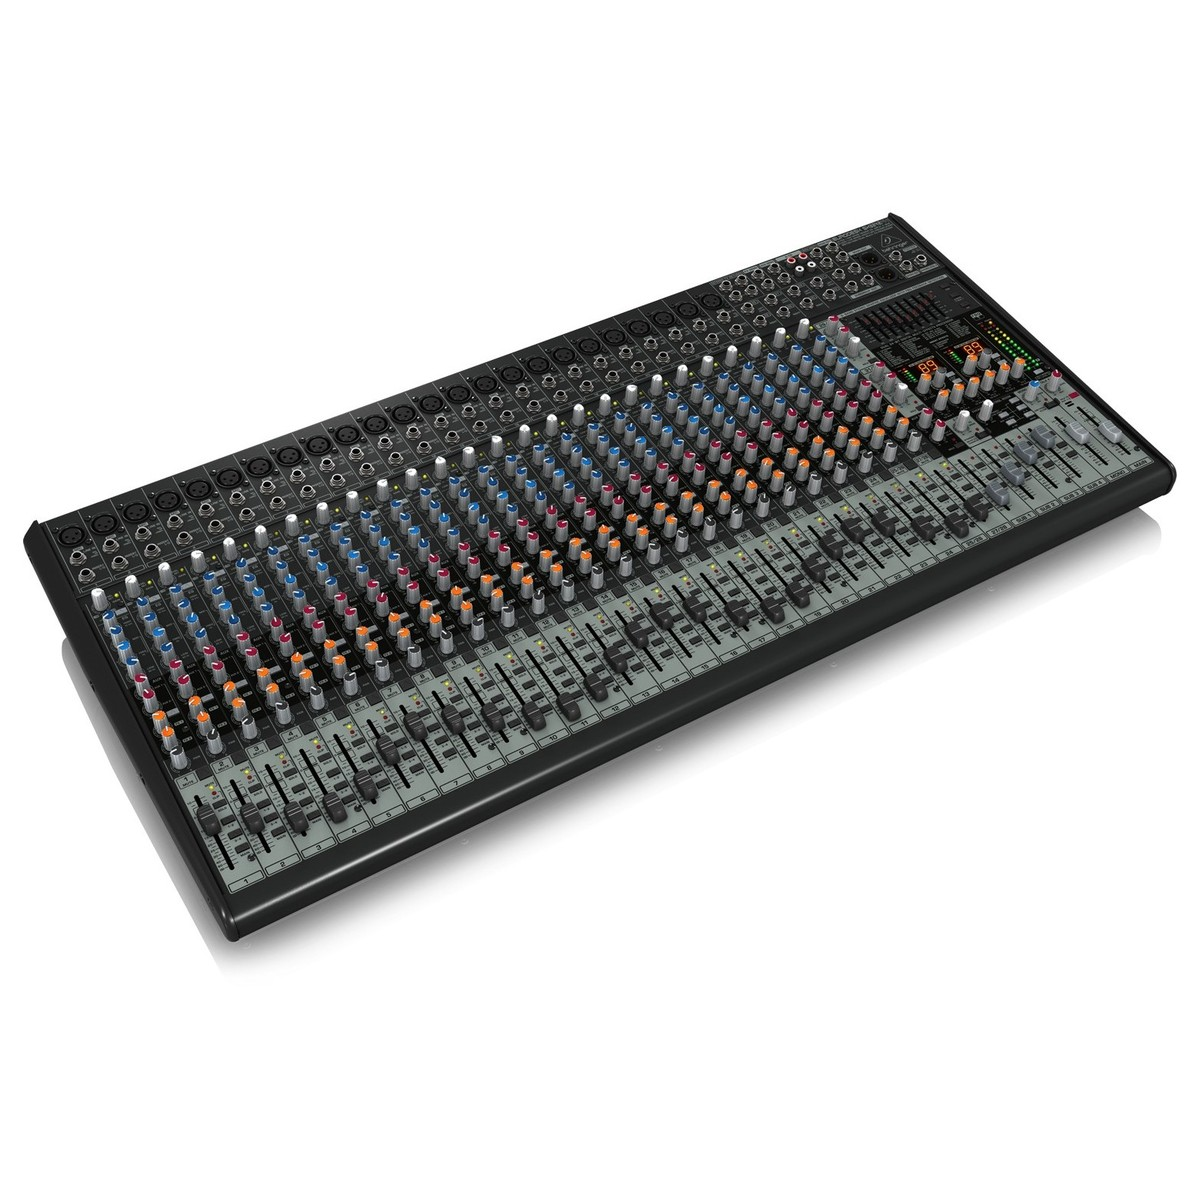 behringer eurodesk sx3242fx analog mixer at gear4music. Black Bedroom Furniture Sets. Home Design Ideas